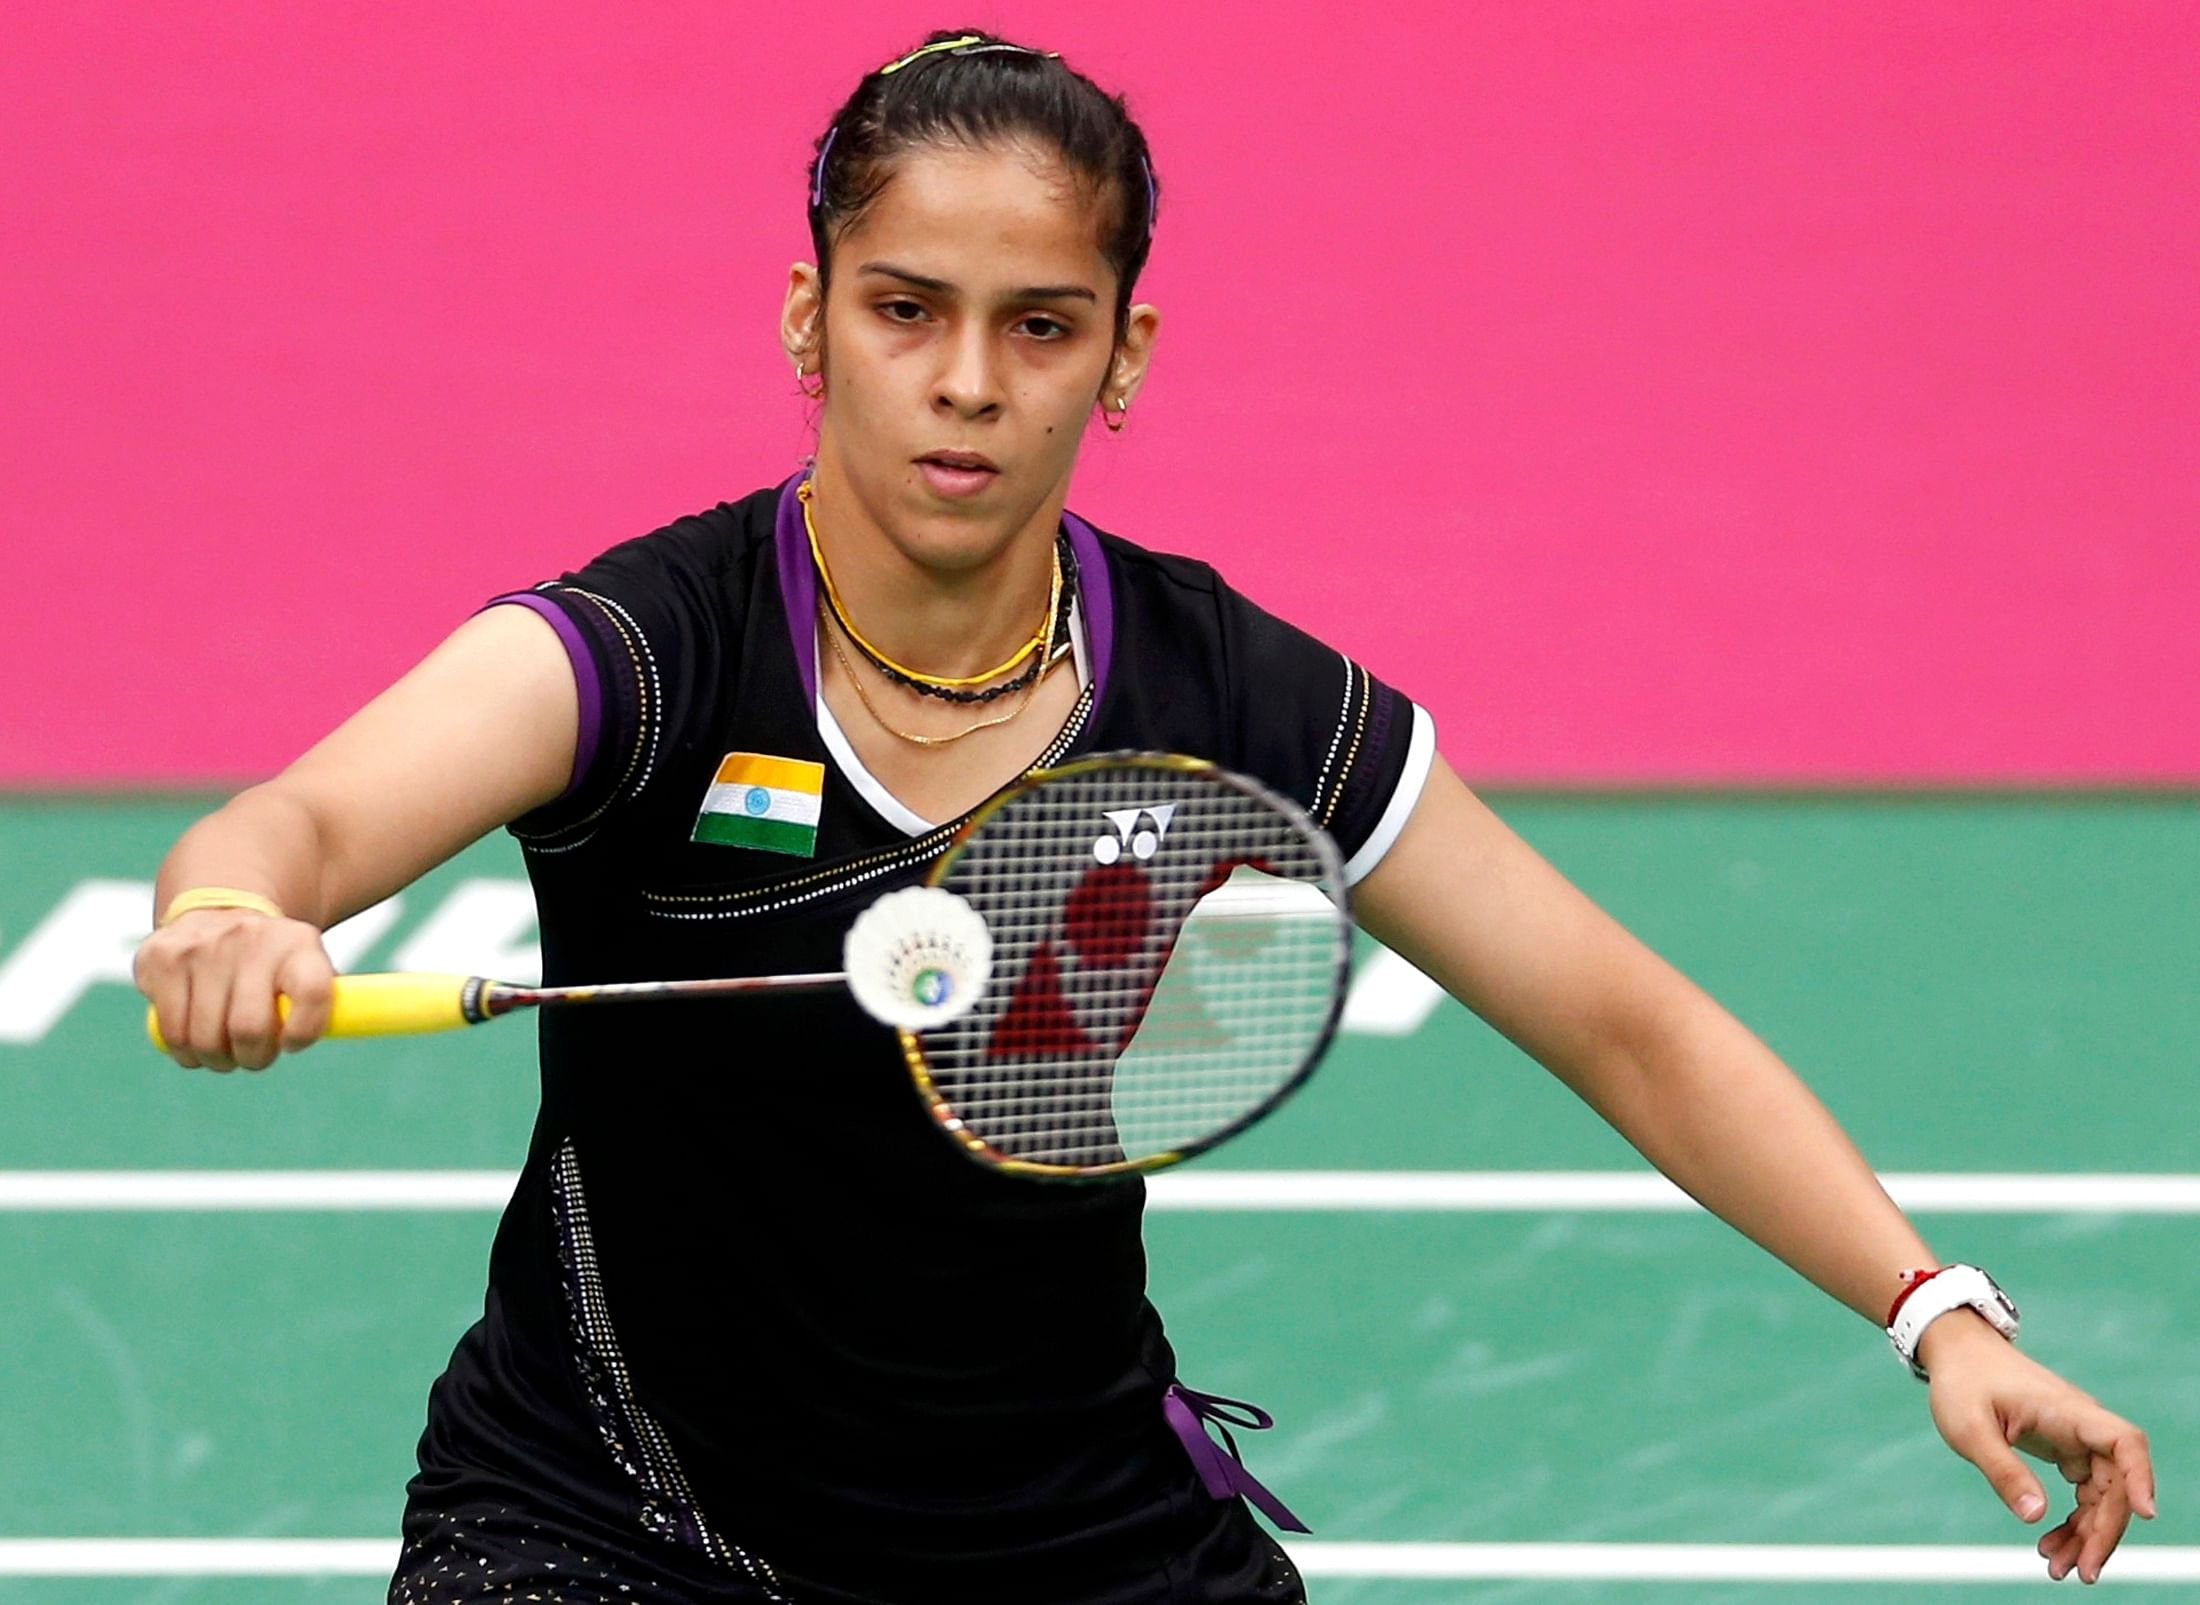 Saina Nehwal could become World No. 1 by the end of the India Open